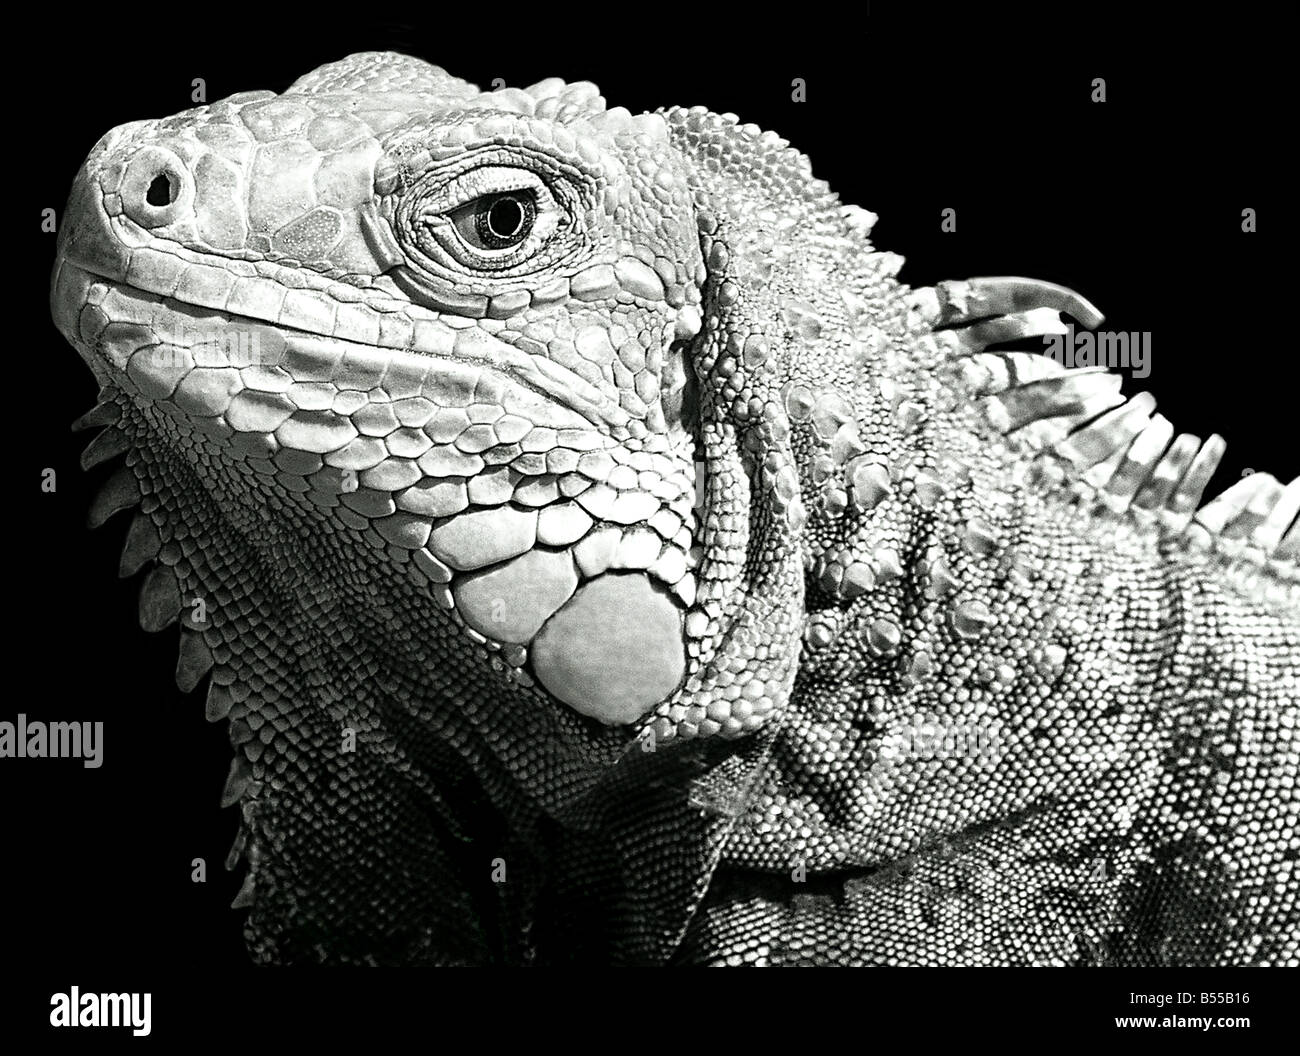 USA, Iguana is a genus of lizard native to tropical areas of Central and South America and the Caribbean. - Stock Image